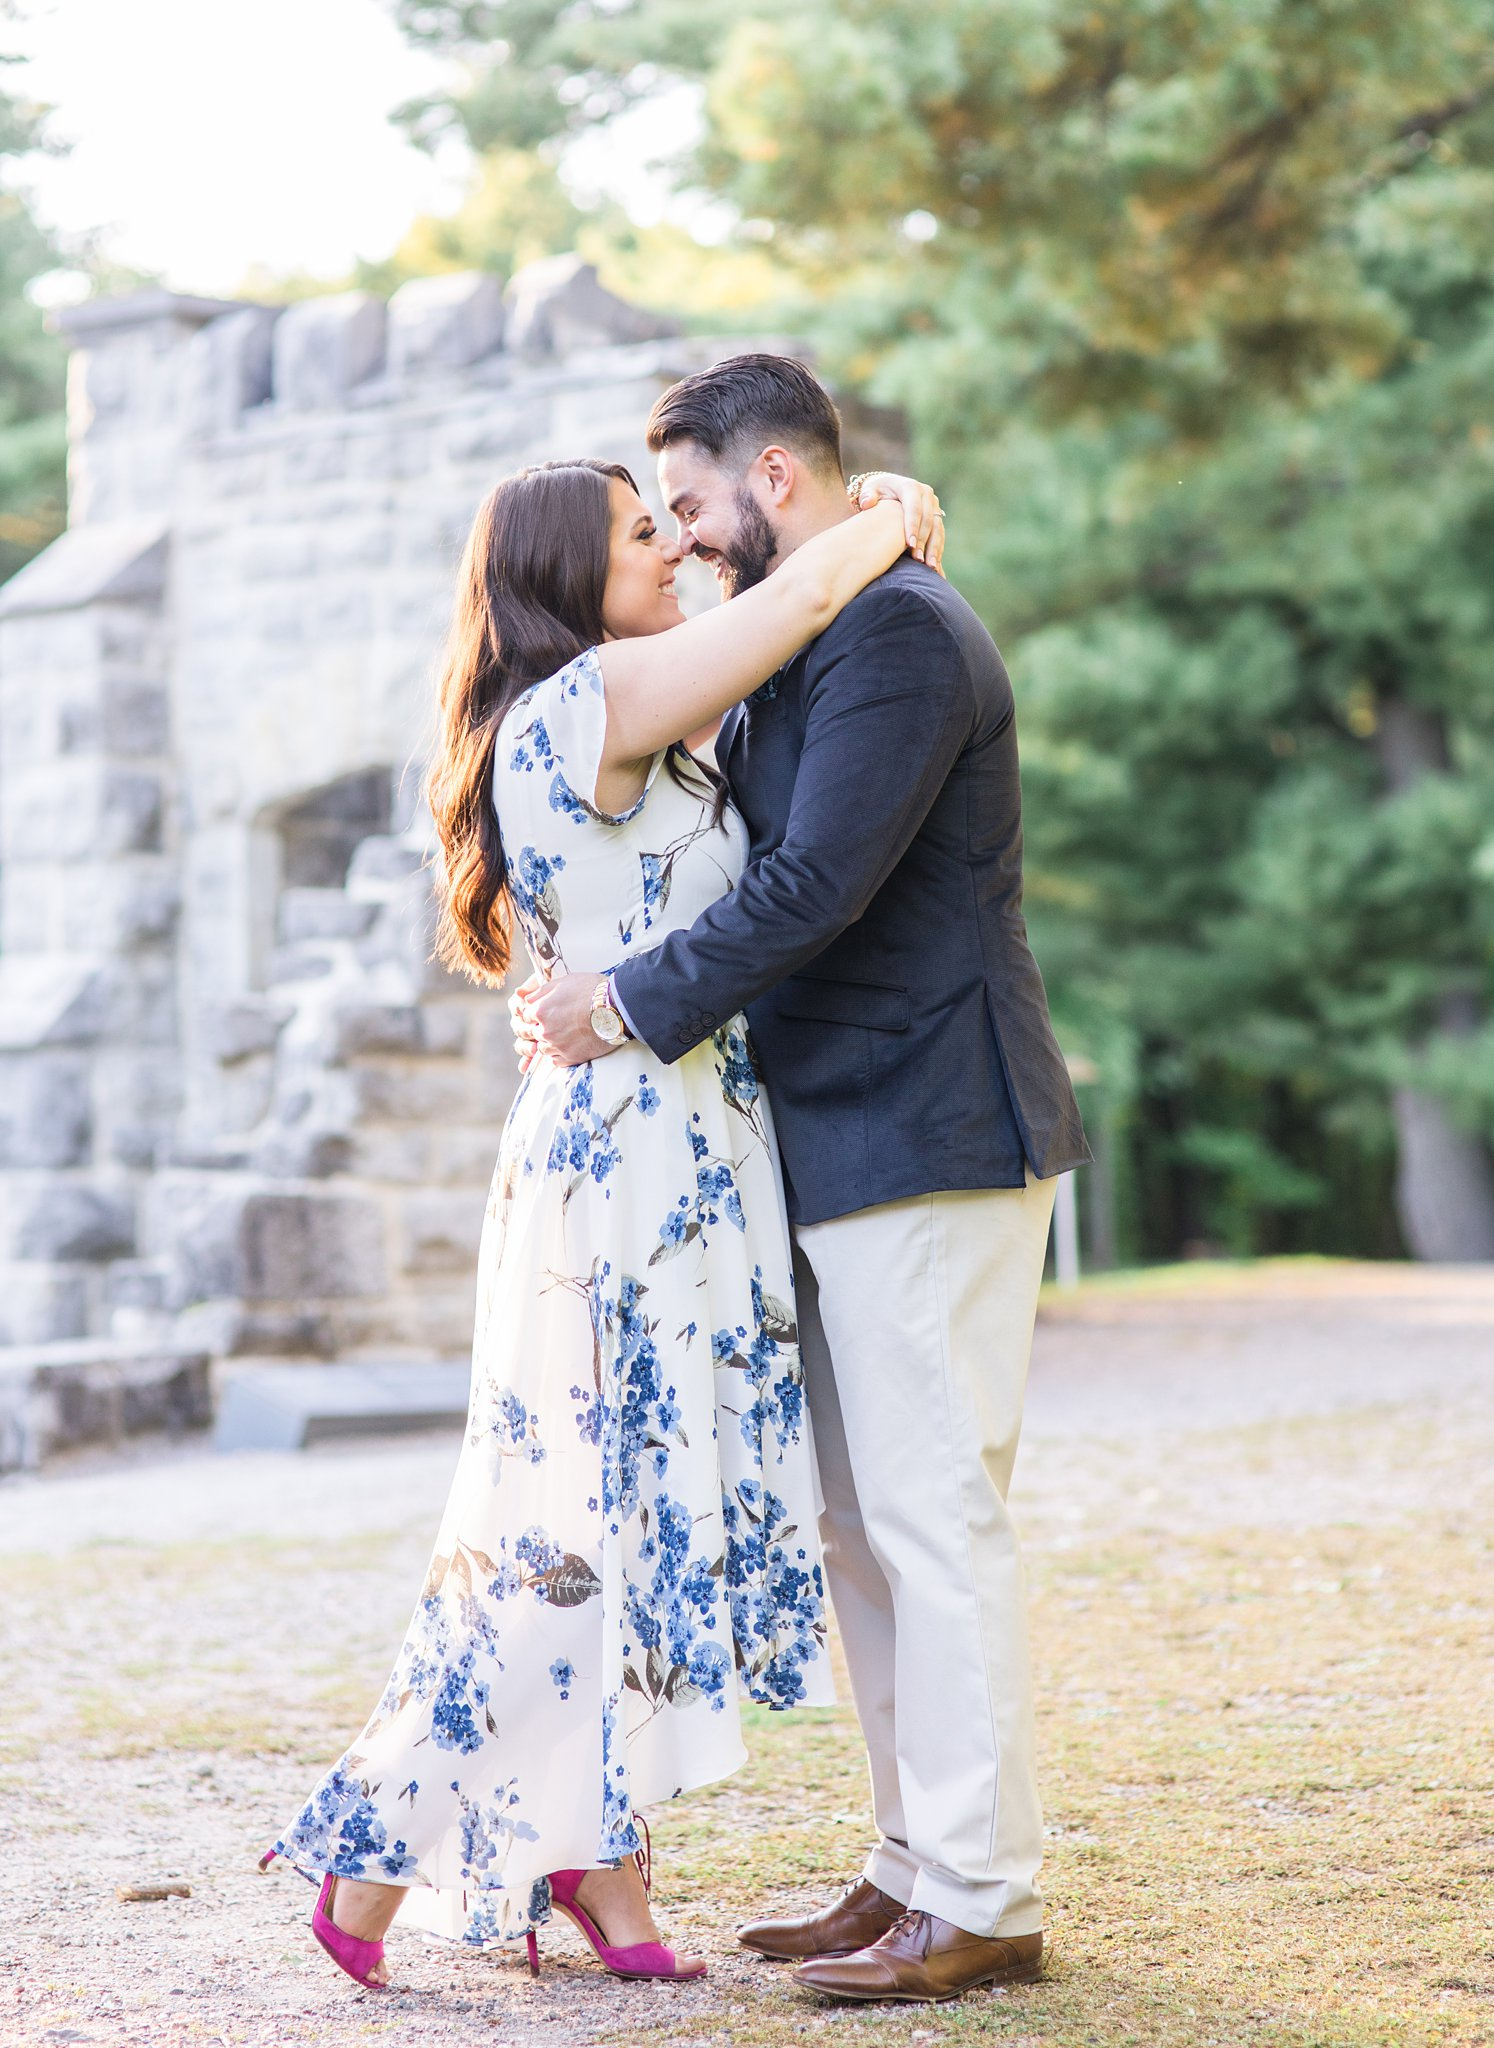 Ruins at Mackenzie King Estate, Mackenzie King Estate Engagement Photos by Amy Pinder Photography